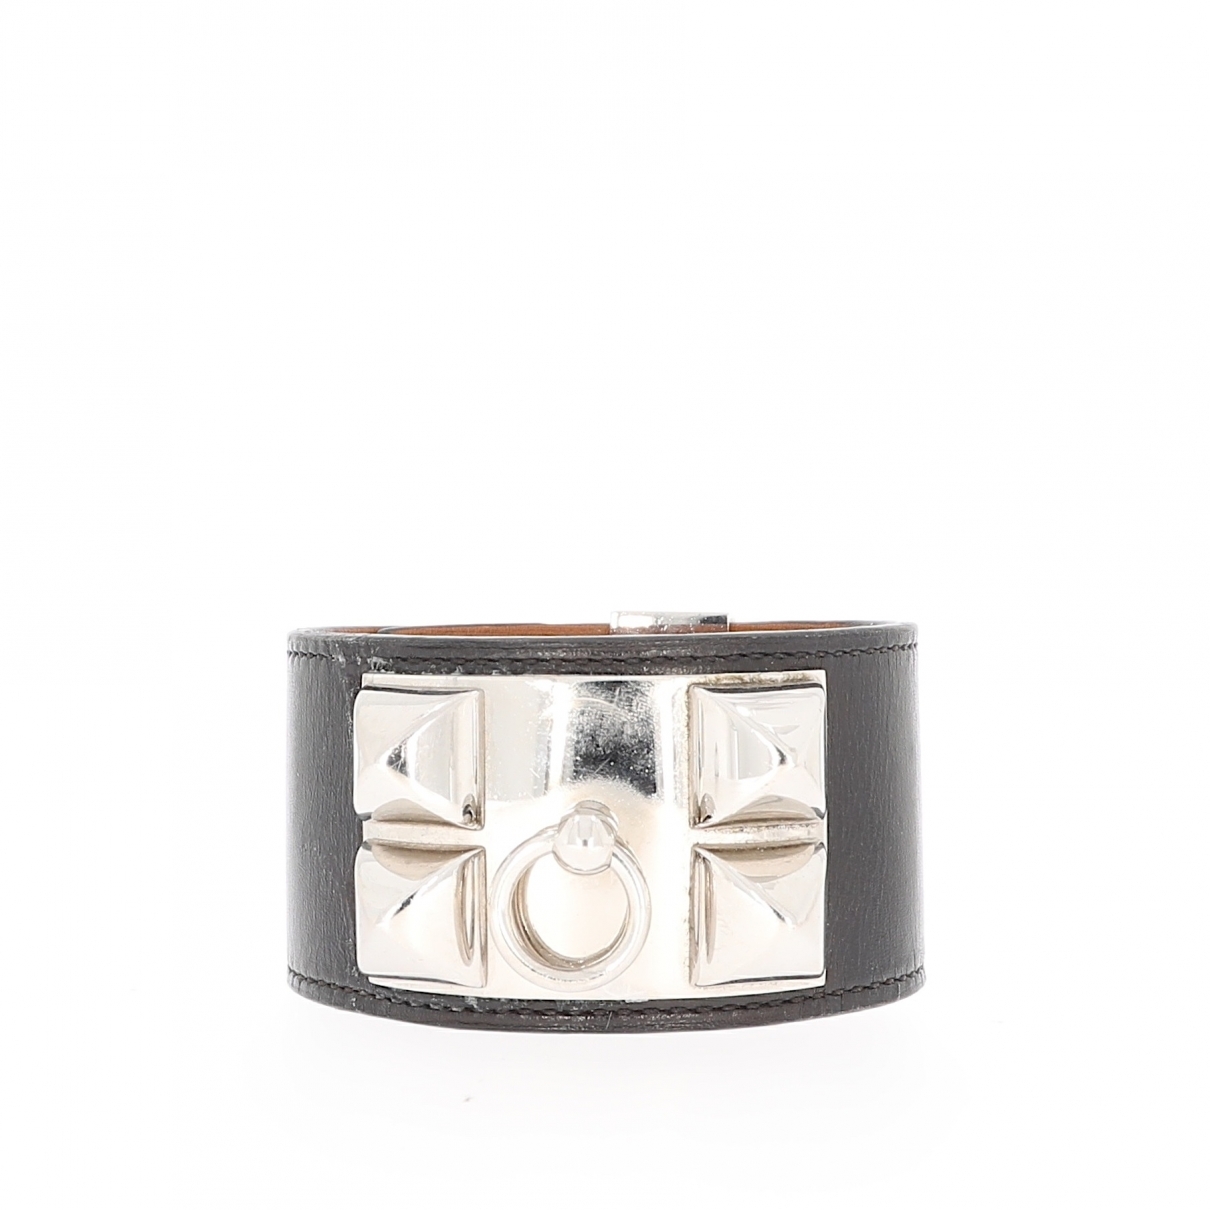 Hermès \N Black Leather bracelet for Women \N